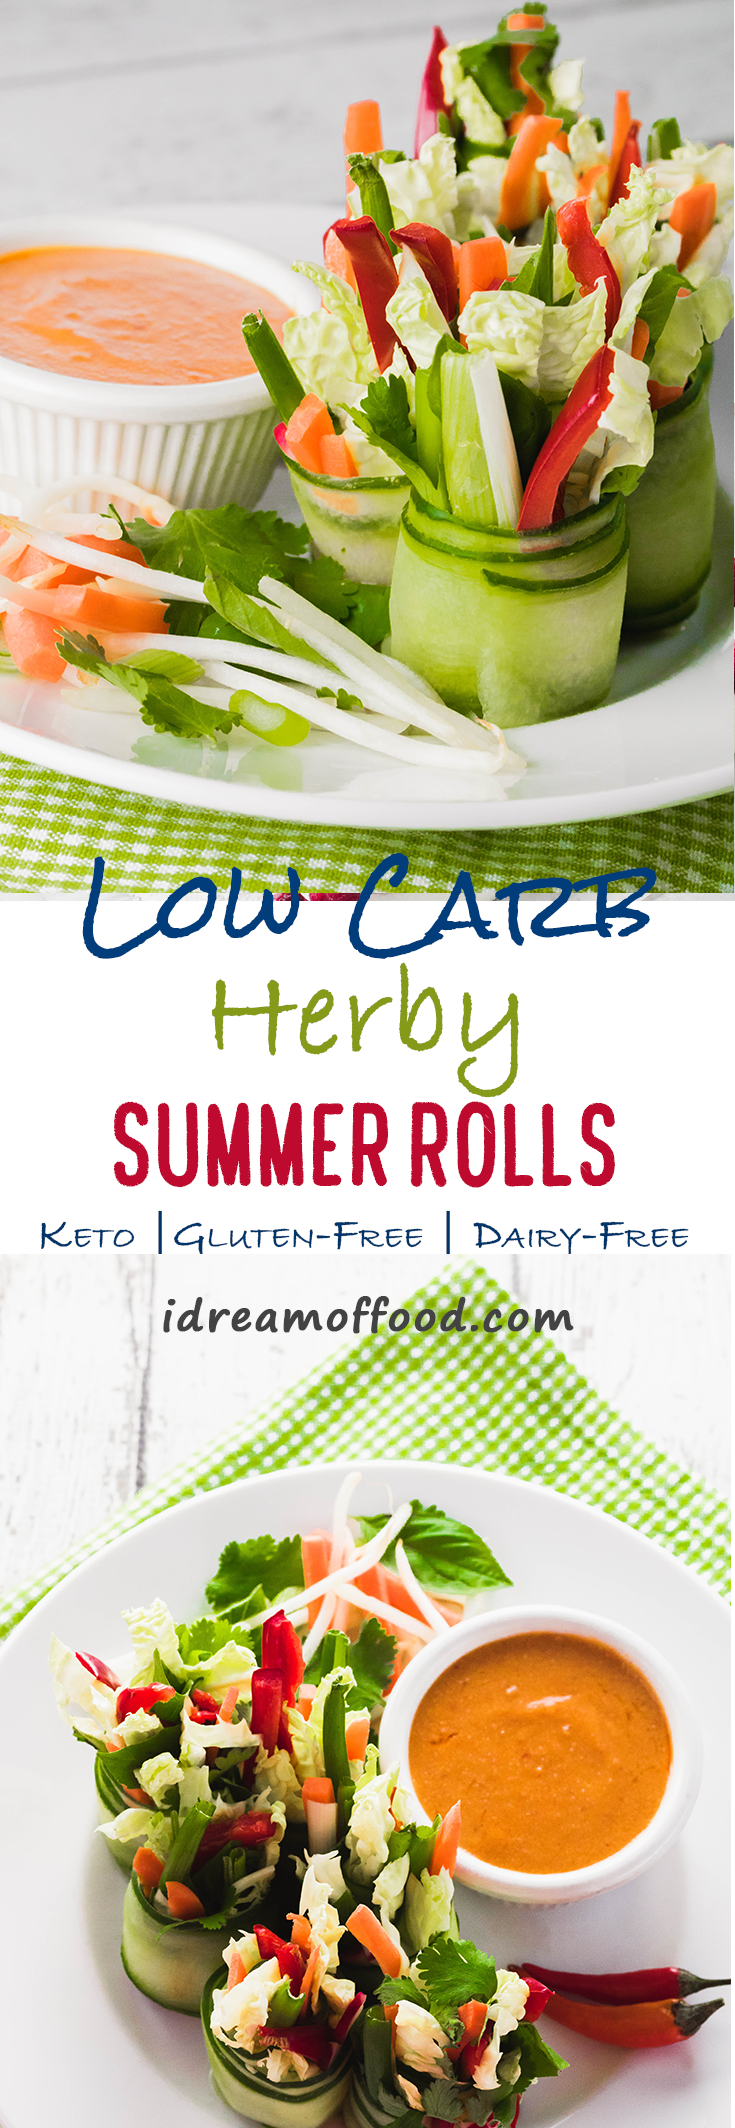 We took one of our favorite appetizers, Vietnamese Summer Rolls, and revamped them to fit a keto lifestyle. THey're actually easier to make than the orginal too! I love how fragrant and herby they are. I like to make my marinade a little spicy too, which gives them a wonderful kick. Try these low-carb veggie rolls with a dipping sauce, such as my low-carb Thai peanut sauce! www.idreamoffood.com